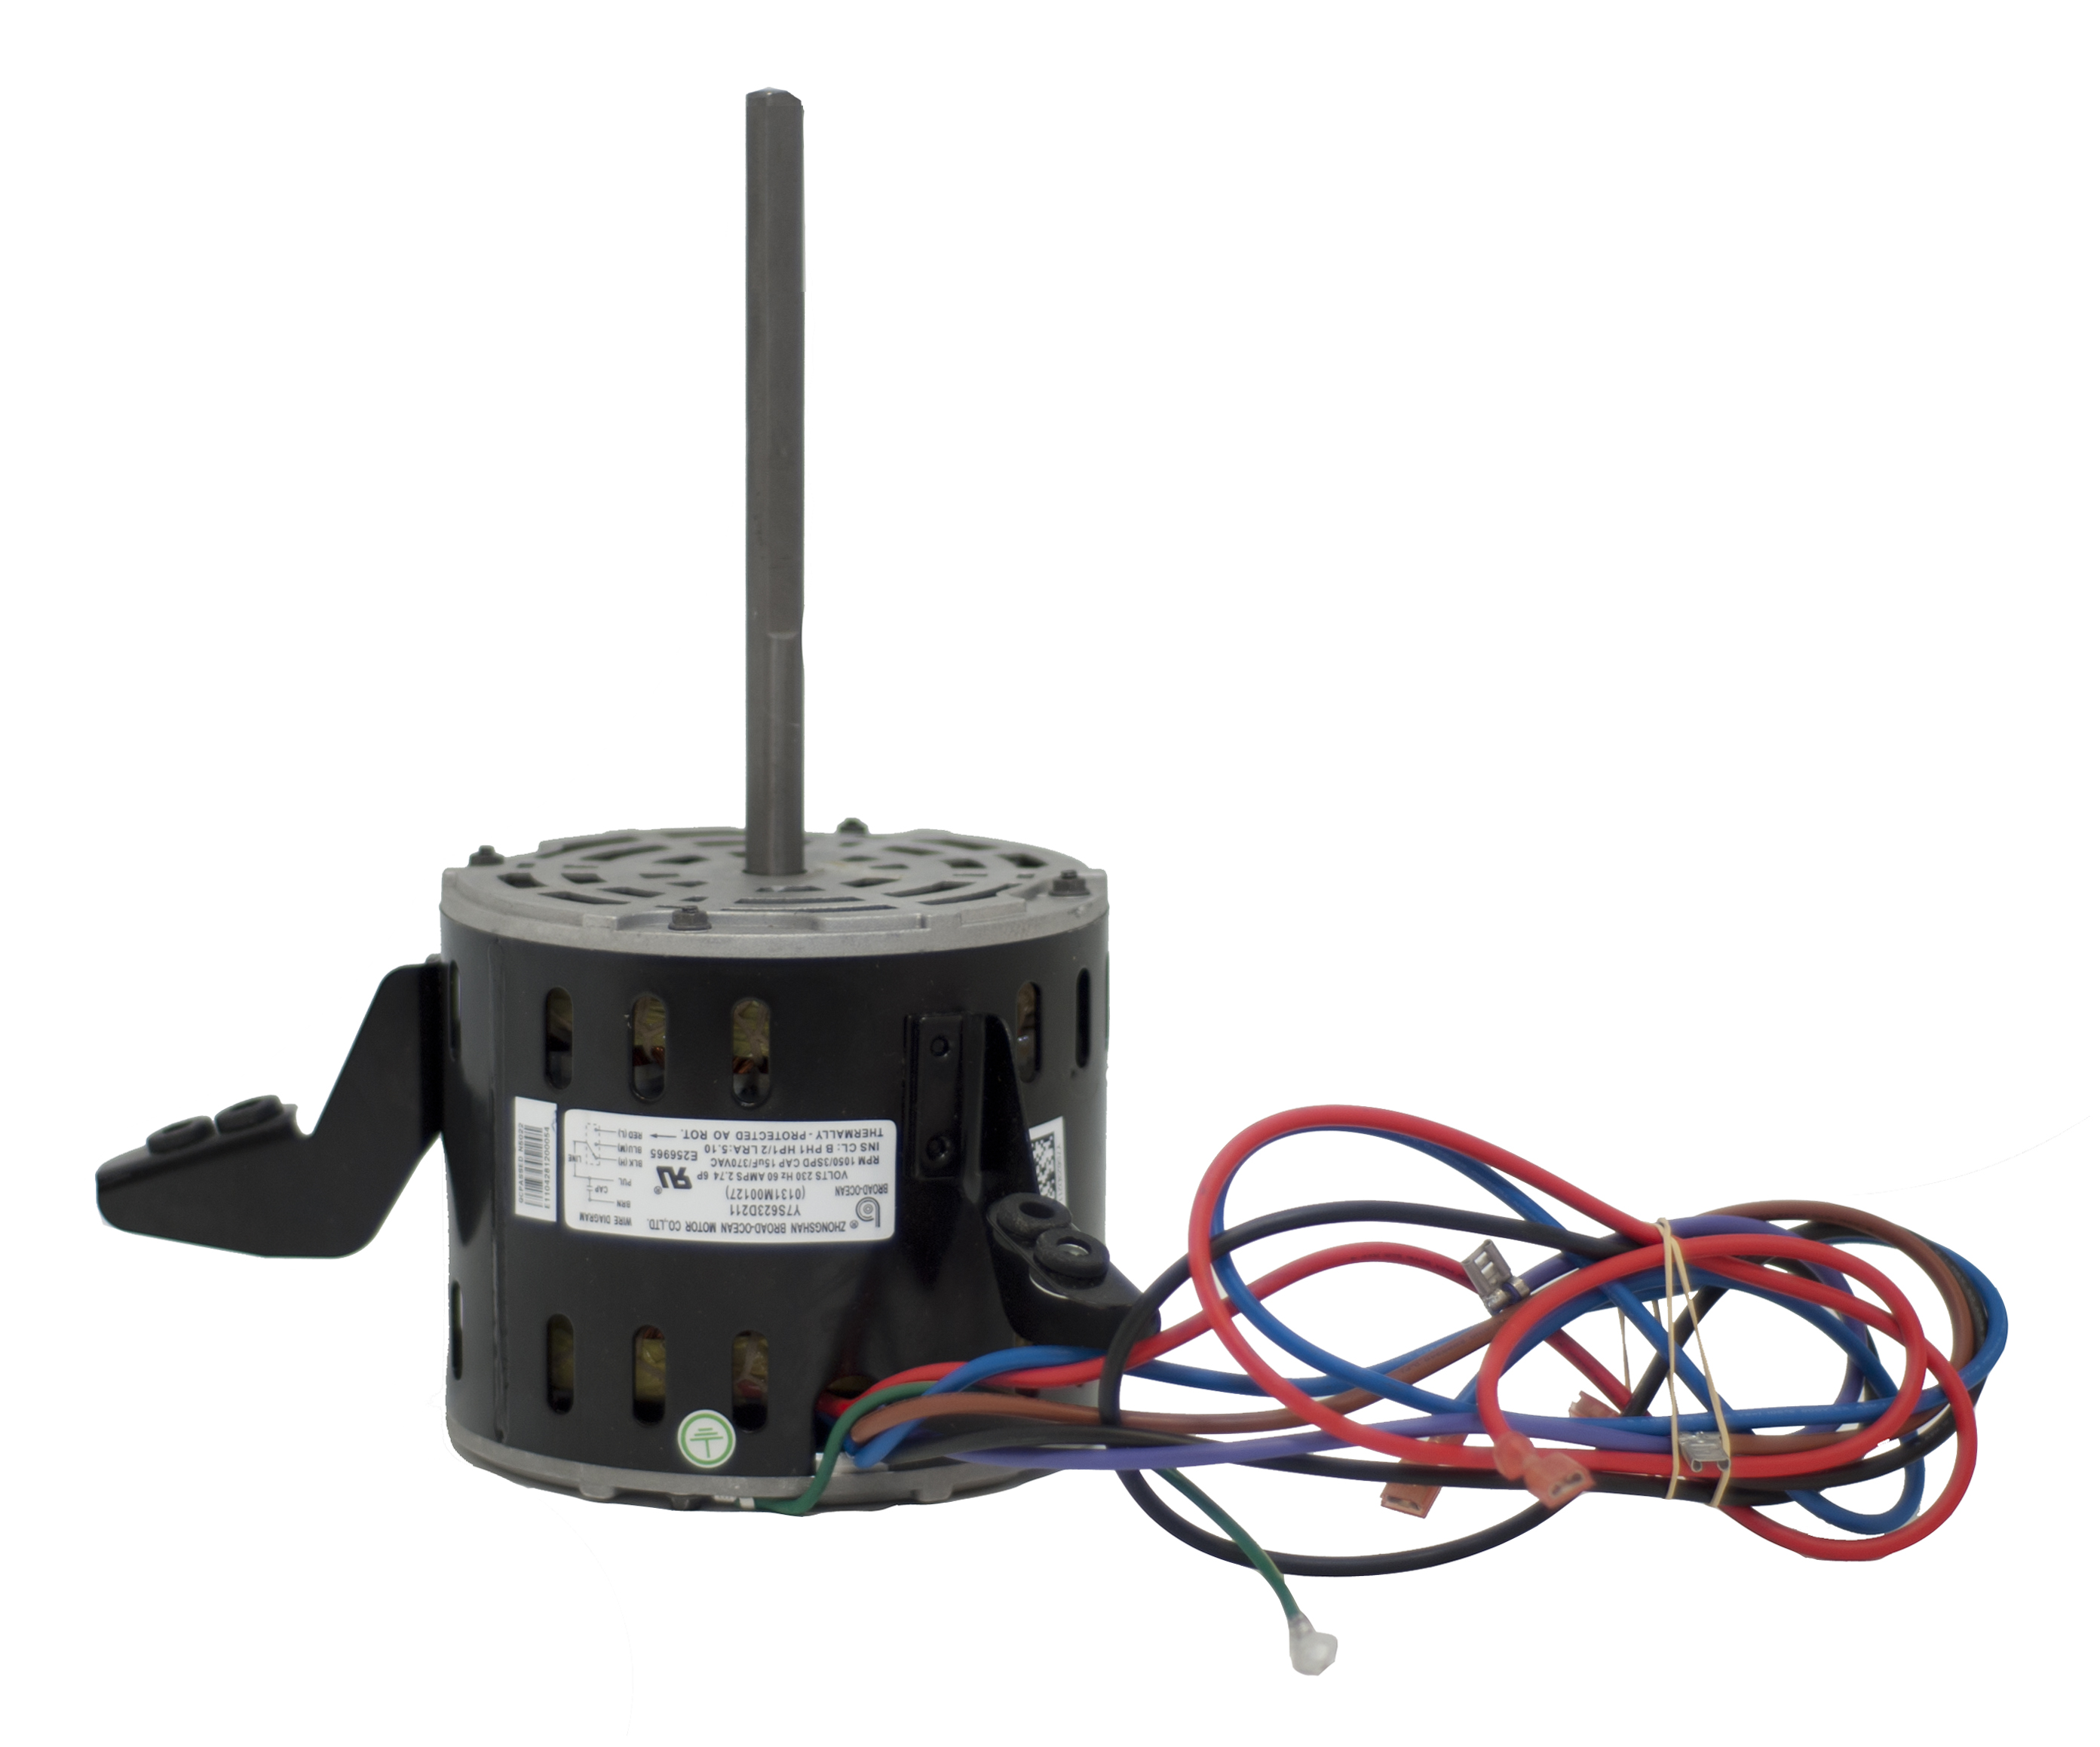 #983337 Blower Motor – 0131M00127S Goodman/Janitrol 1/2 HP 230V  Recommended 12077 Goodman Air Conditioner Parts pics with 2785x2317 px on helpvideos.info - Air Conditioners, Air Coolers and more